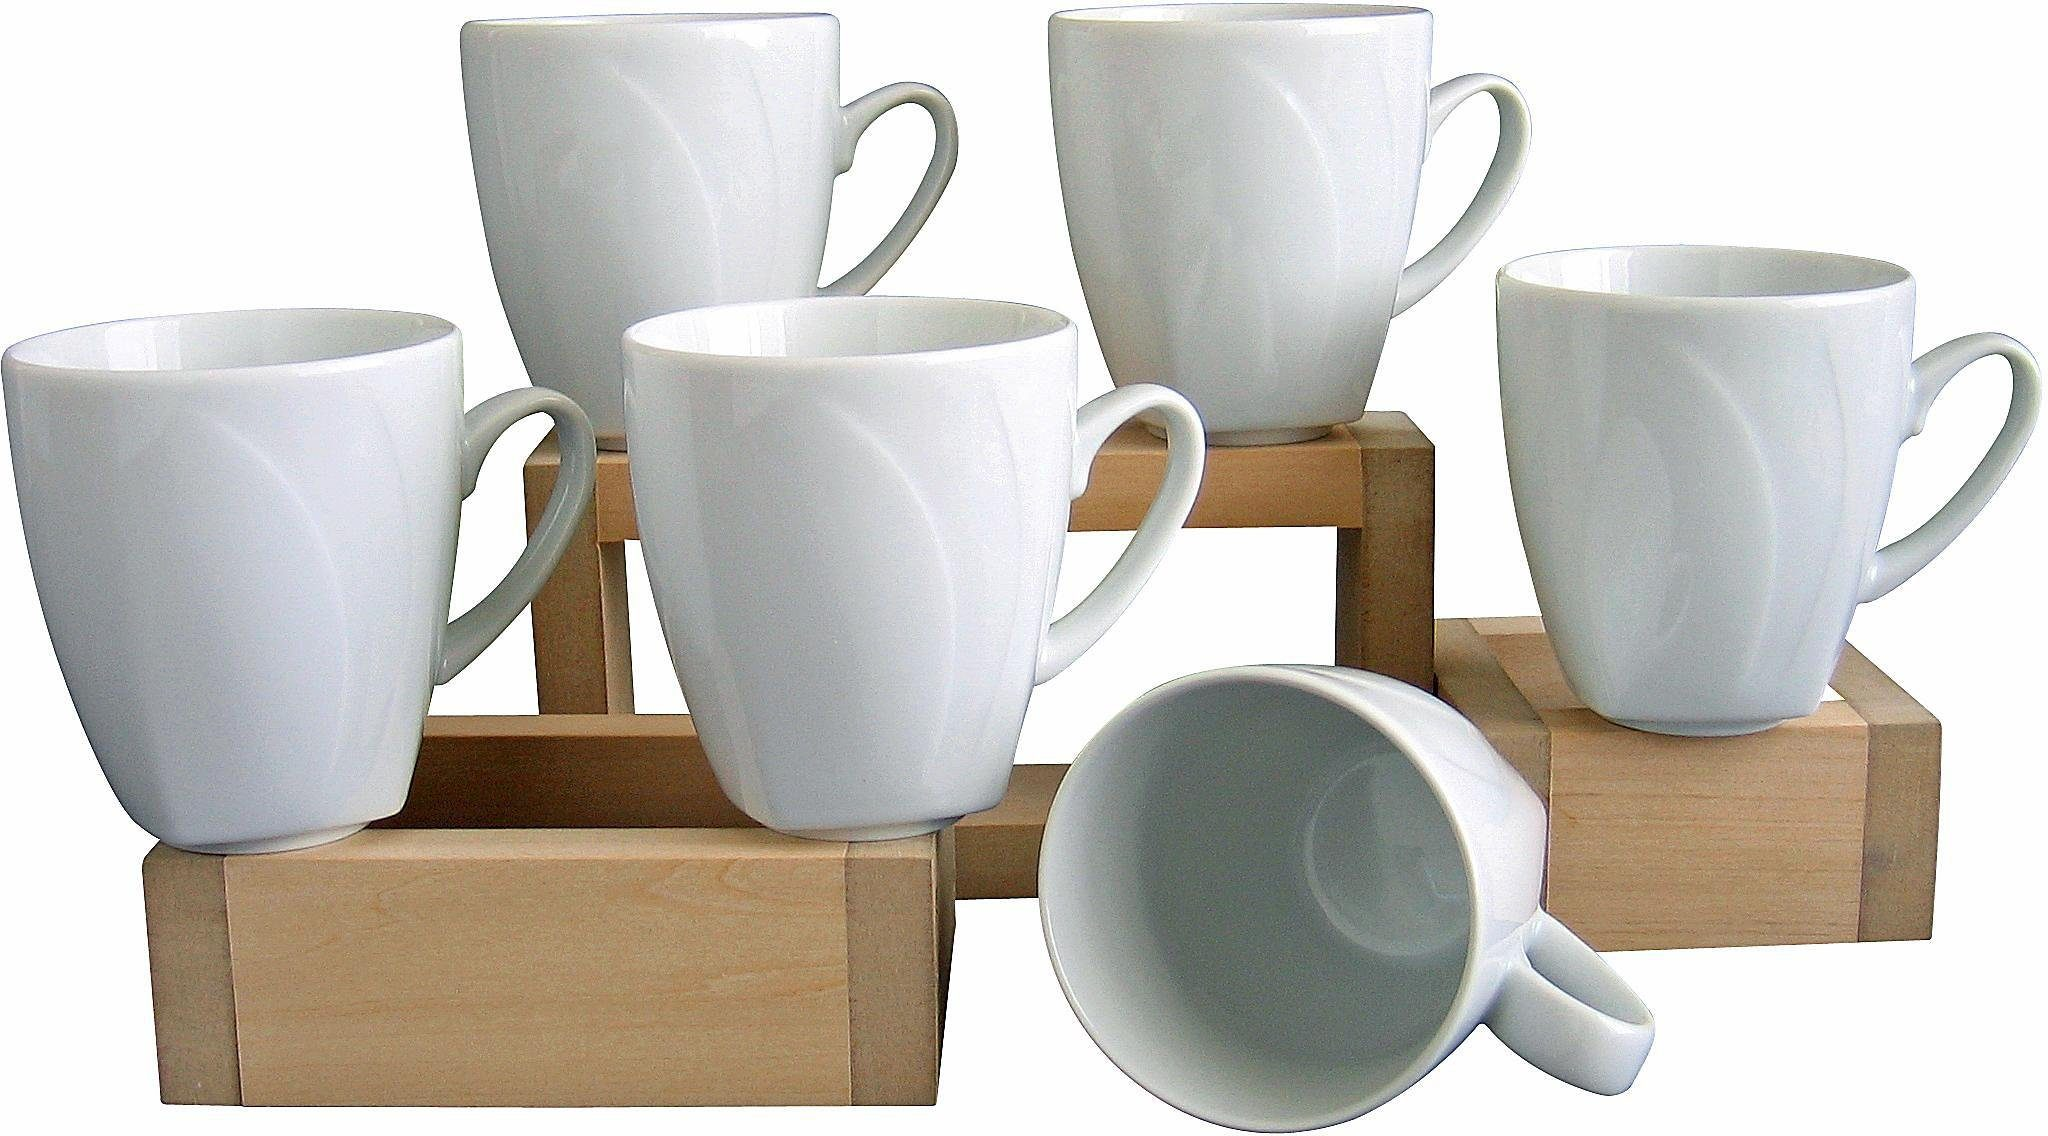 Image of 6 Kaffeebecher, »Celebration«, in weiss